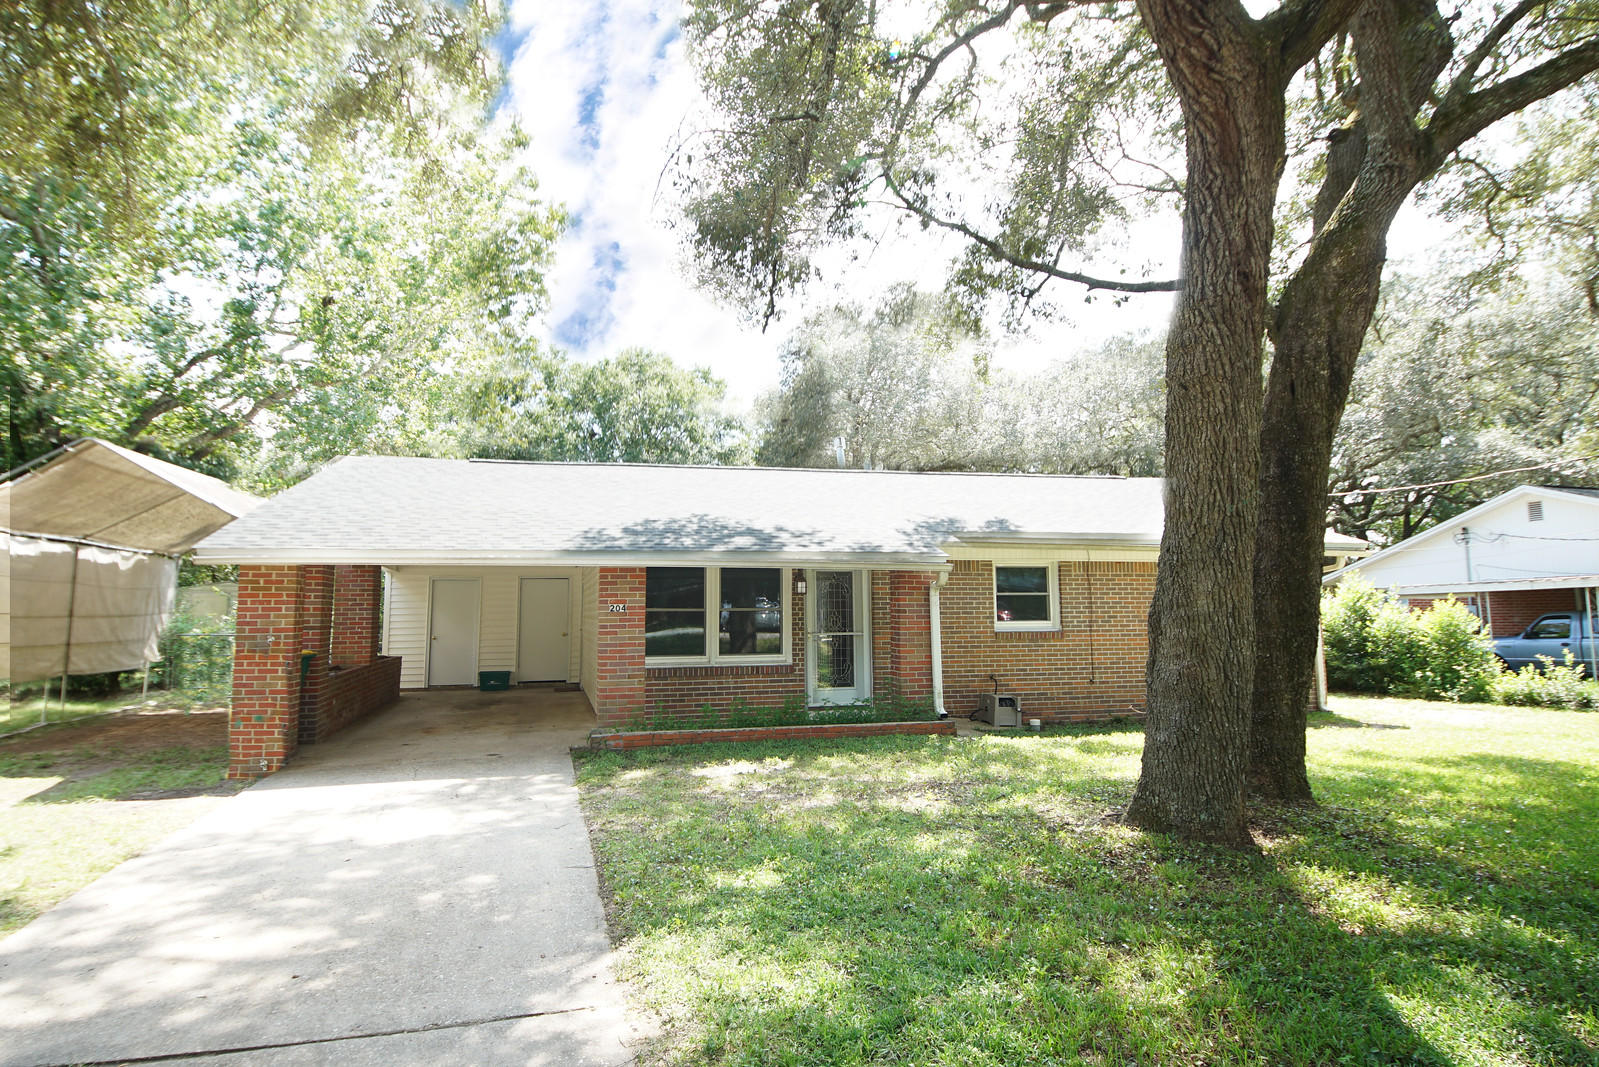 Photo of home for sale at 204 21st, Niceville FL